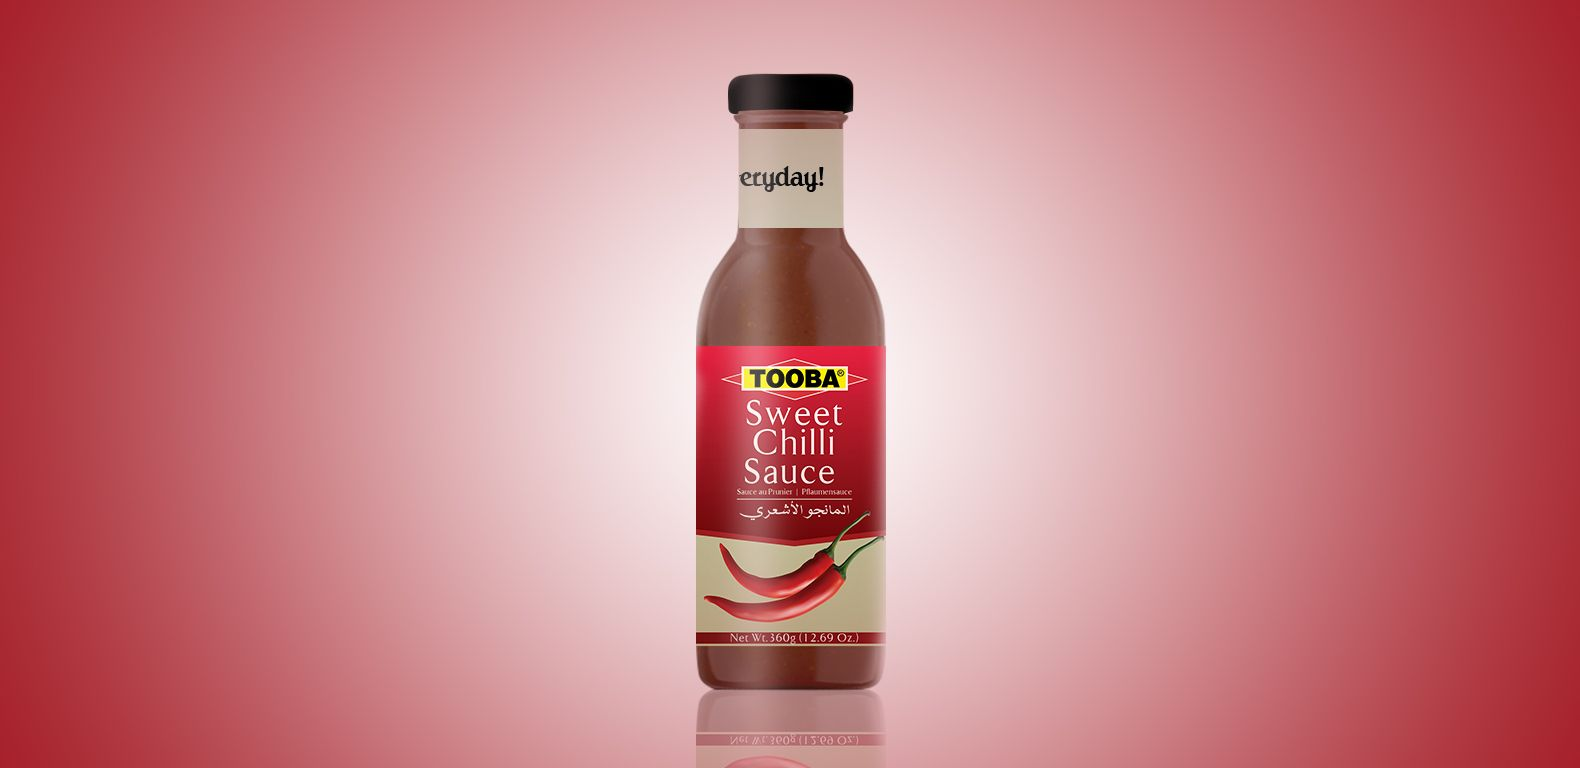 Packaging-Design-Tooba-Sauces-1580x768-Sweet-Chilli